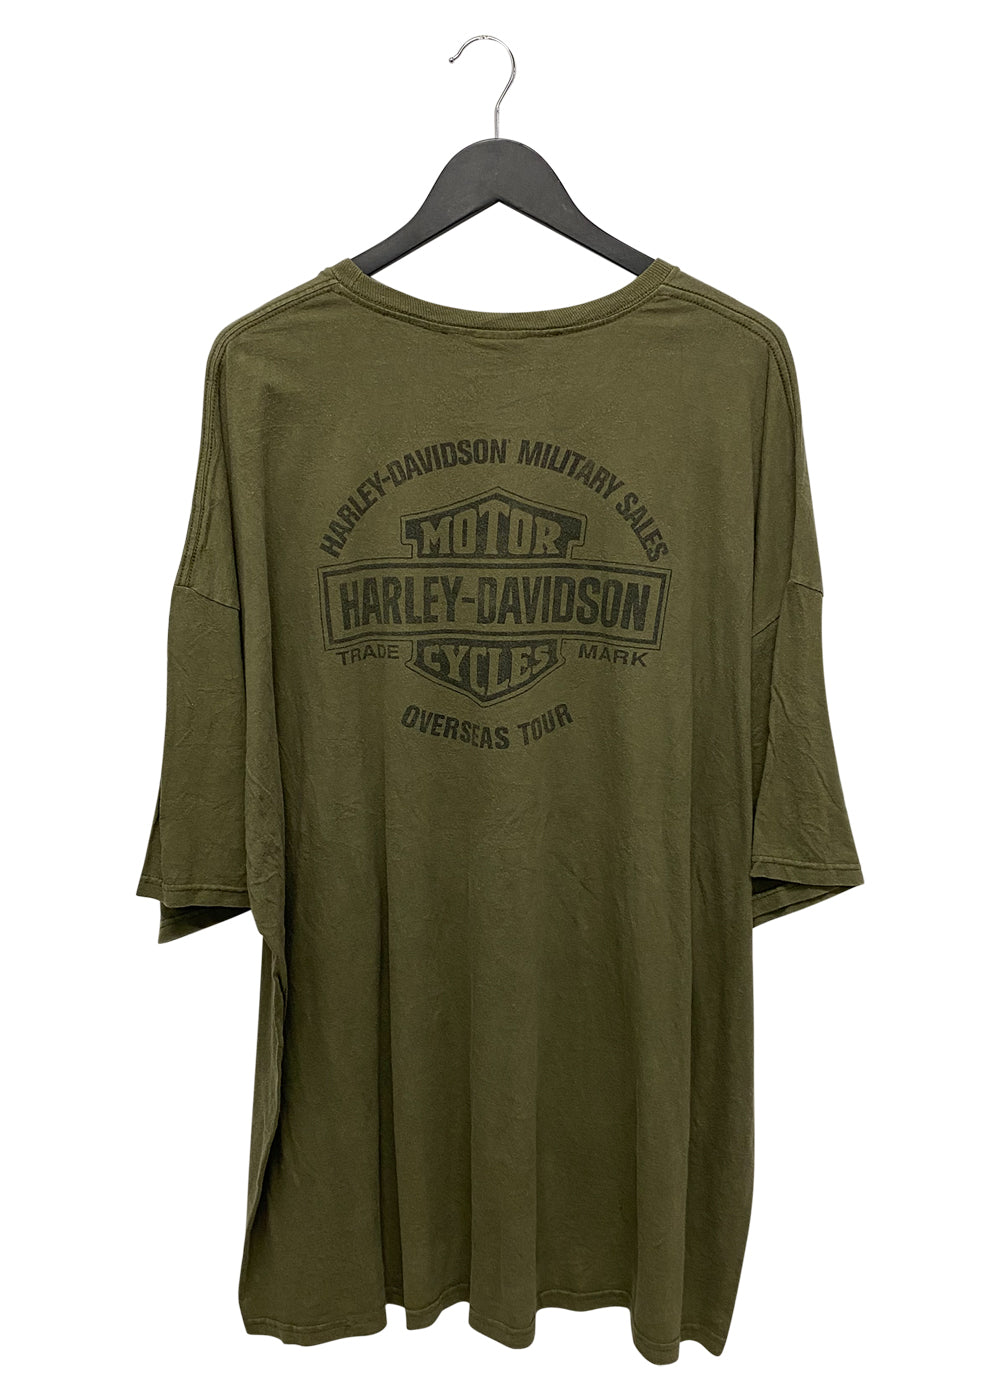 HARLEY DAVIDSON 'CHARLESTON' COLLECTOR TEE